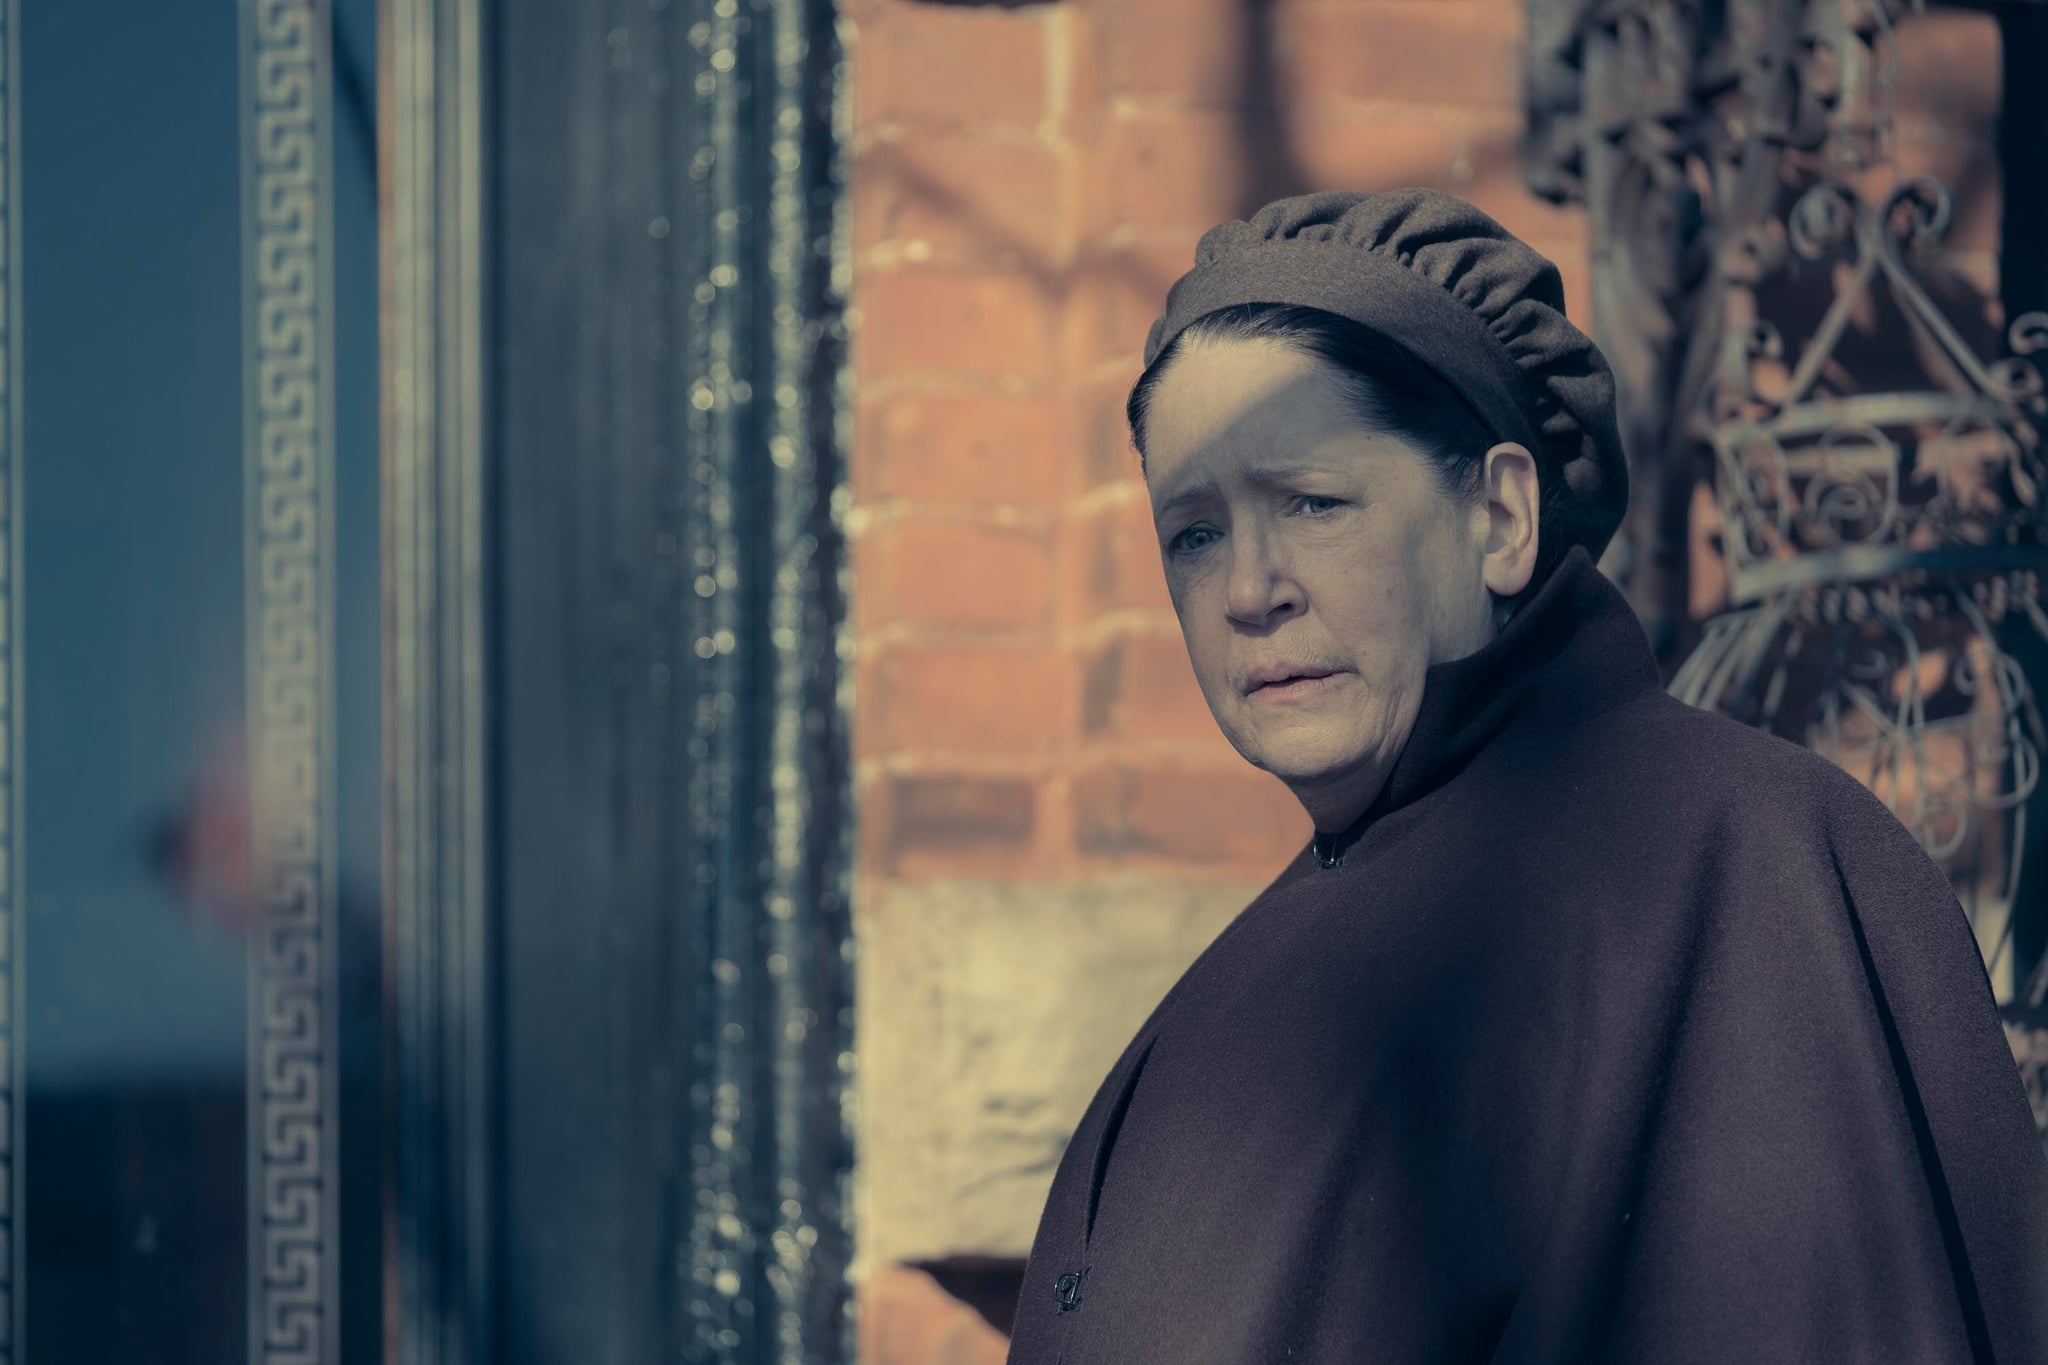 THE HANDMAID'S TALE, Ann Dowd in 'Postpartum' (Season 2, Episode 12, aired July 4, 2018). ph: George Kraychyk/ Hulu/courtesy Everett Collection